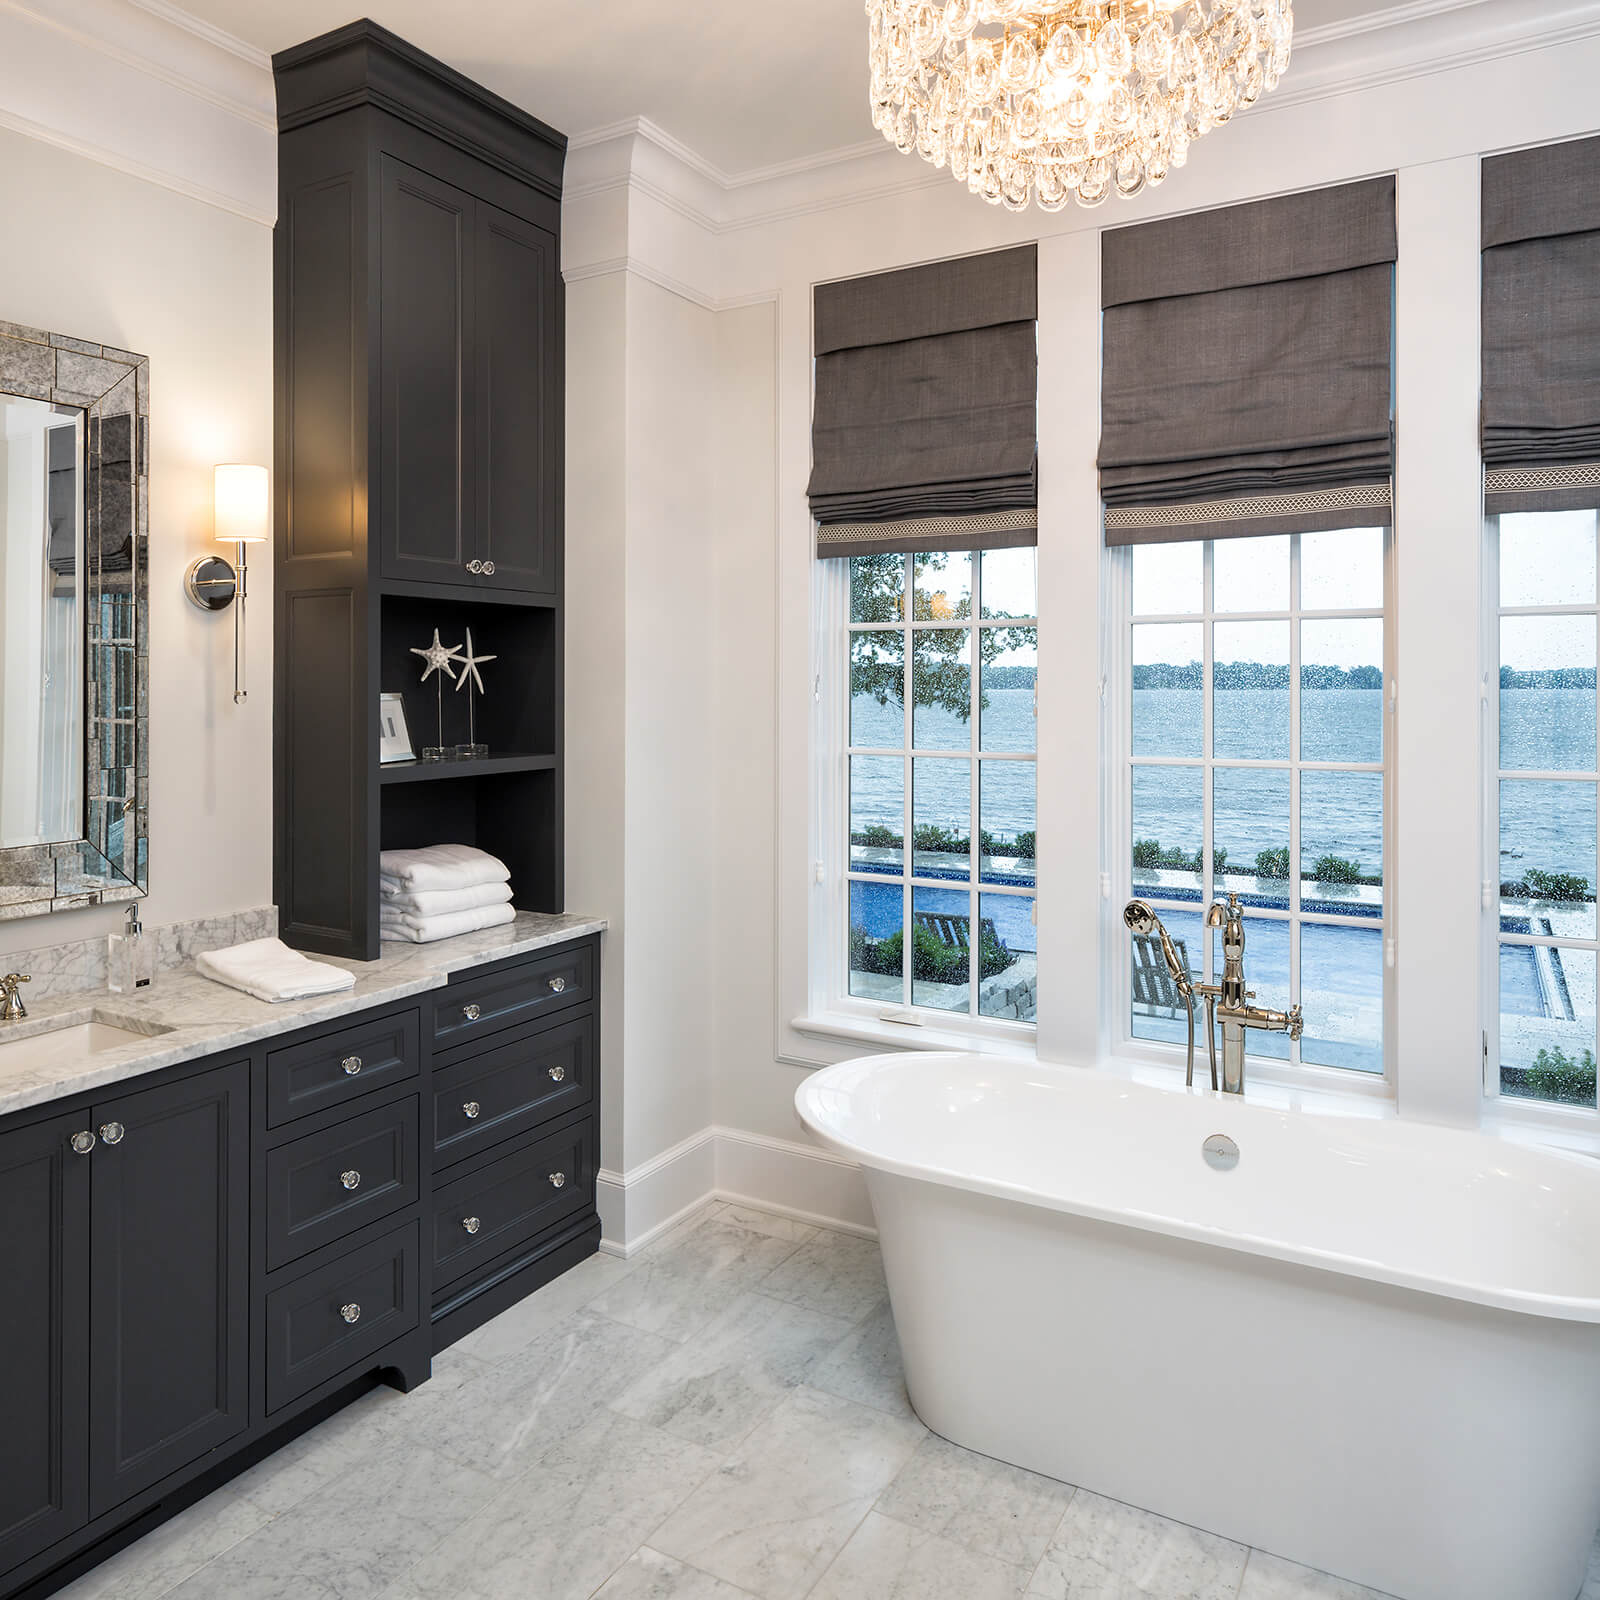 Modern style bathroom with pool and lake view with Marvin Elevate Casement Windows